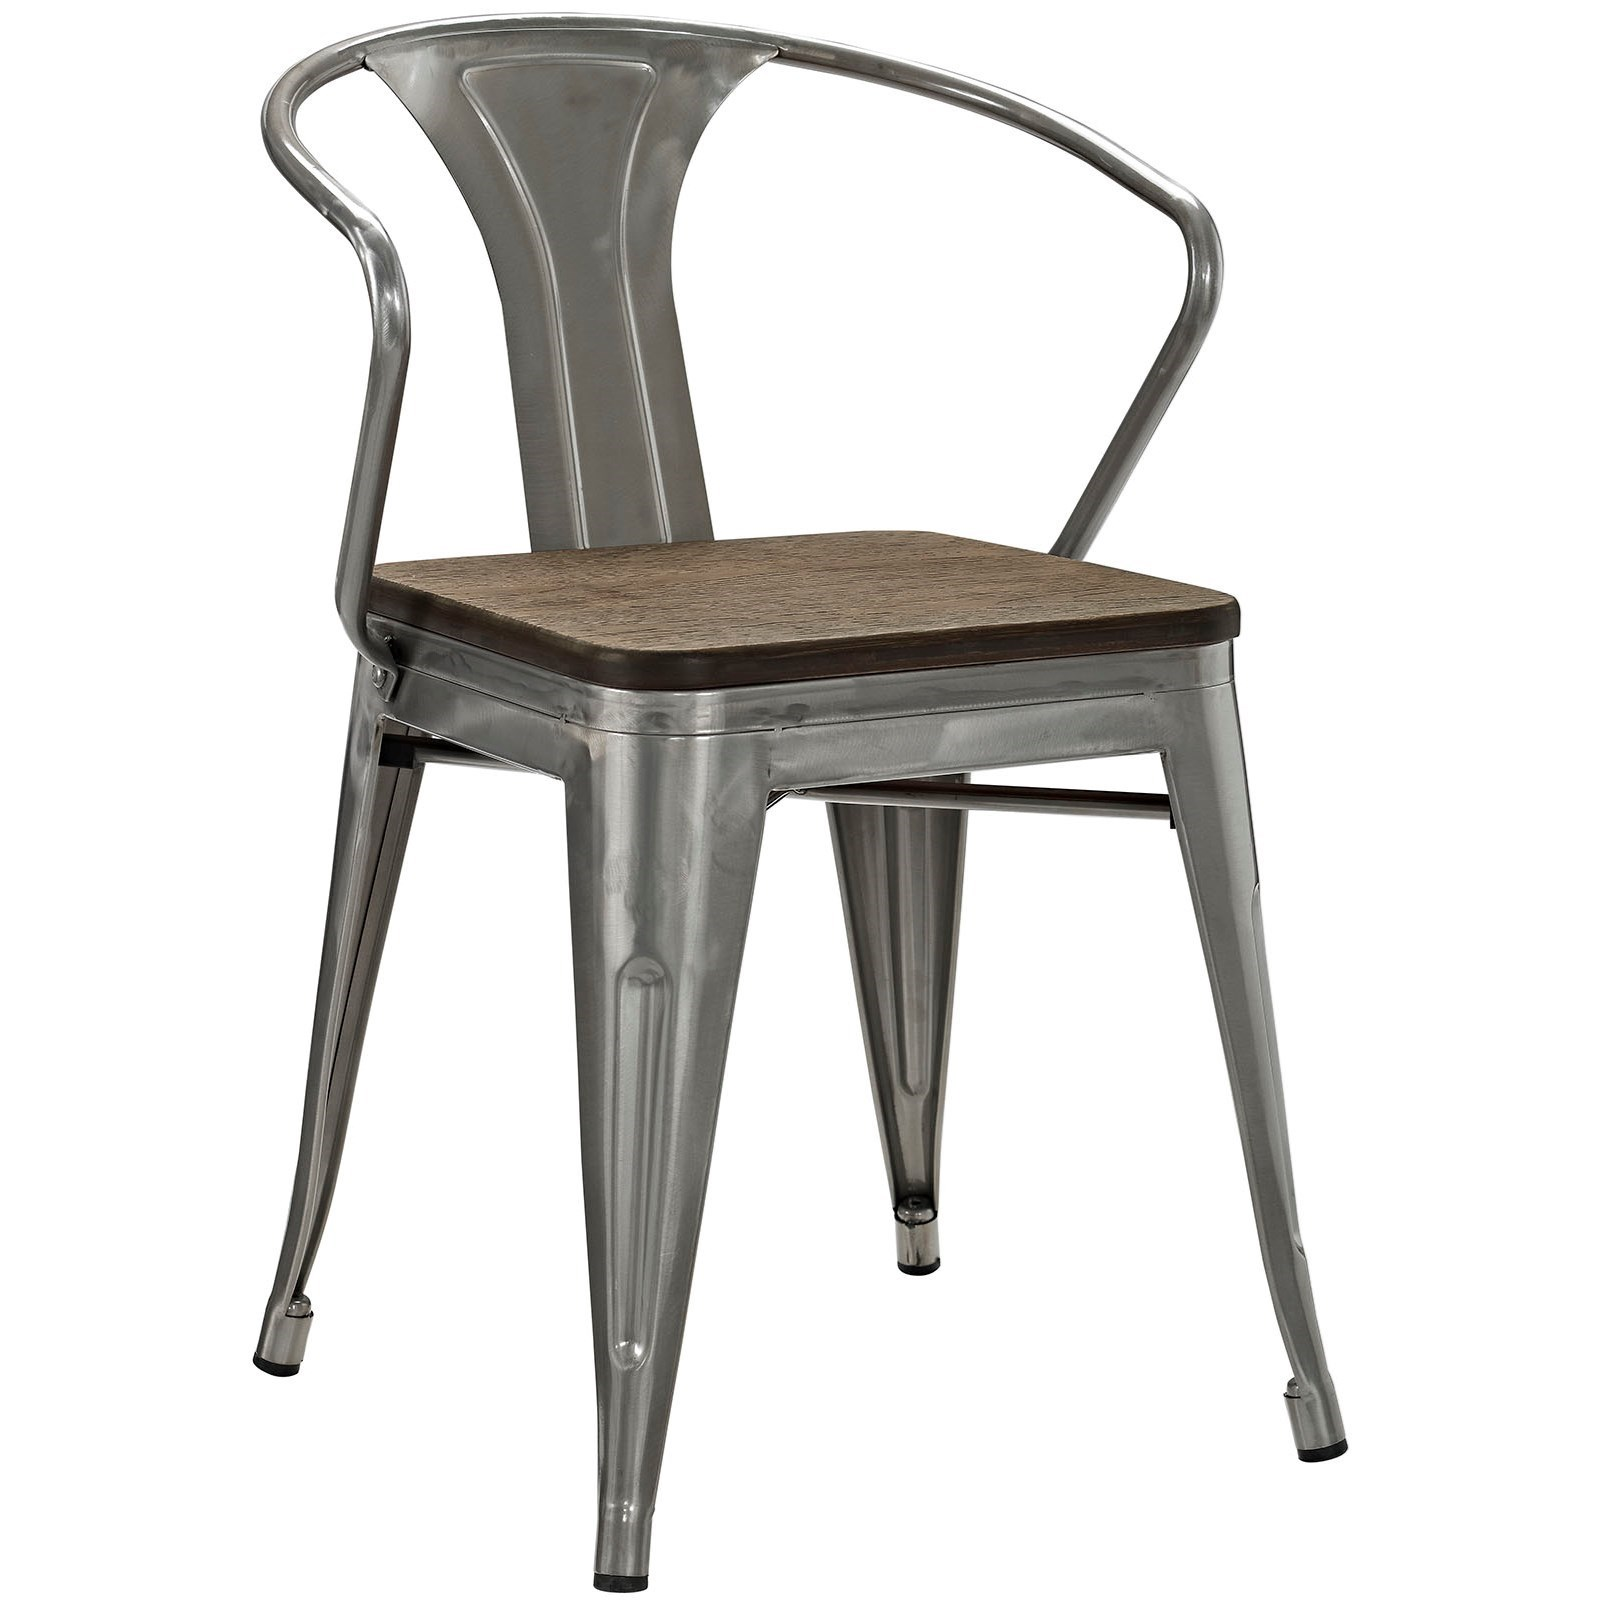 Promenade Bamboo Dining Chair by Modway at Value City Furniture